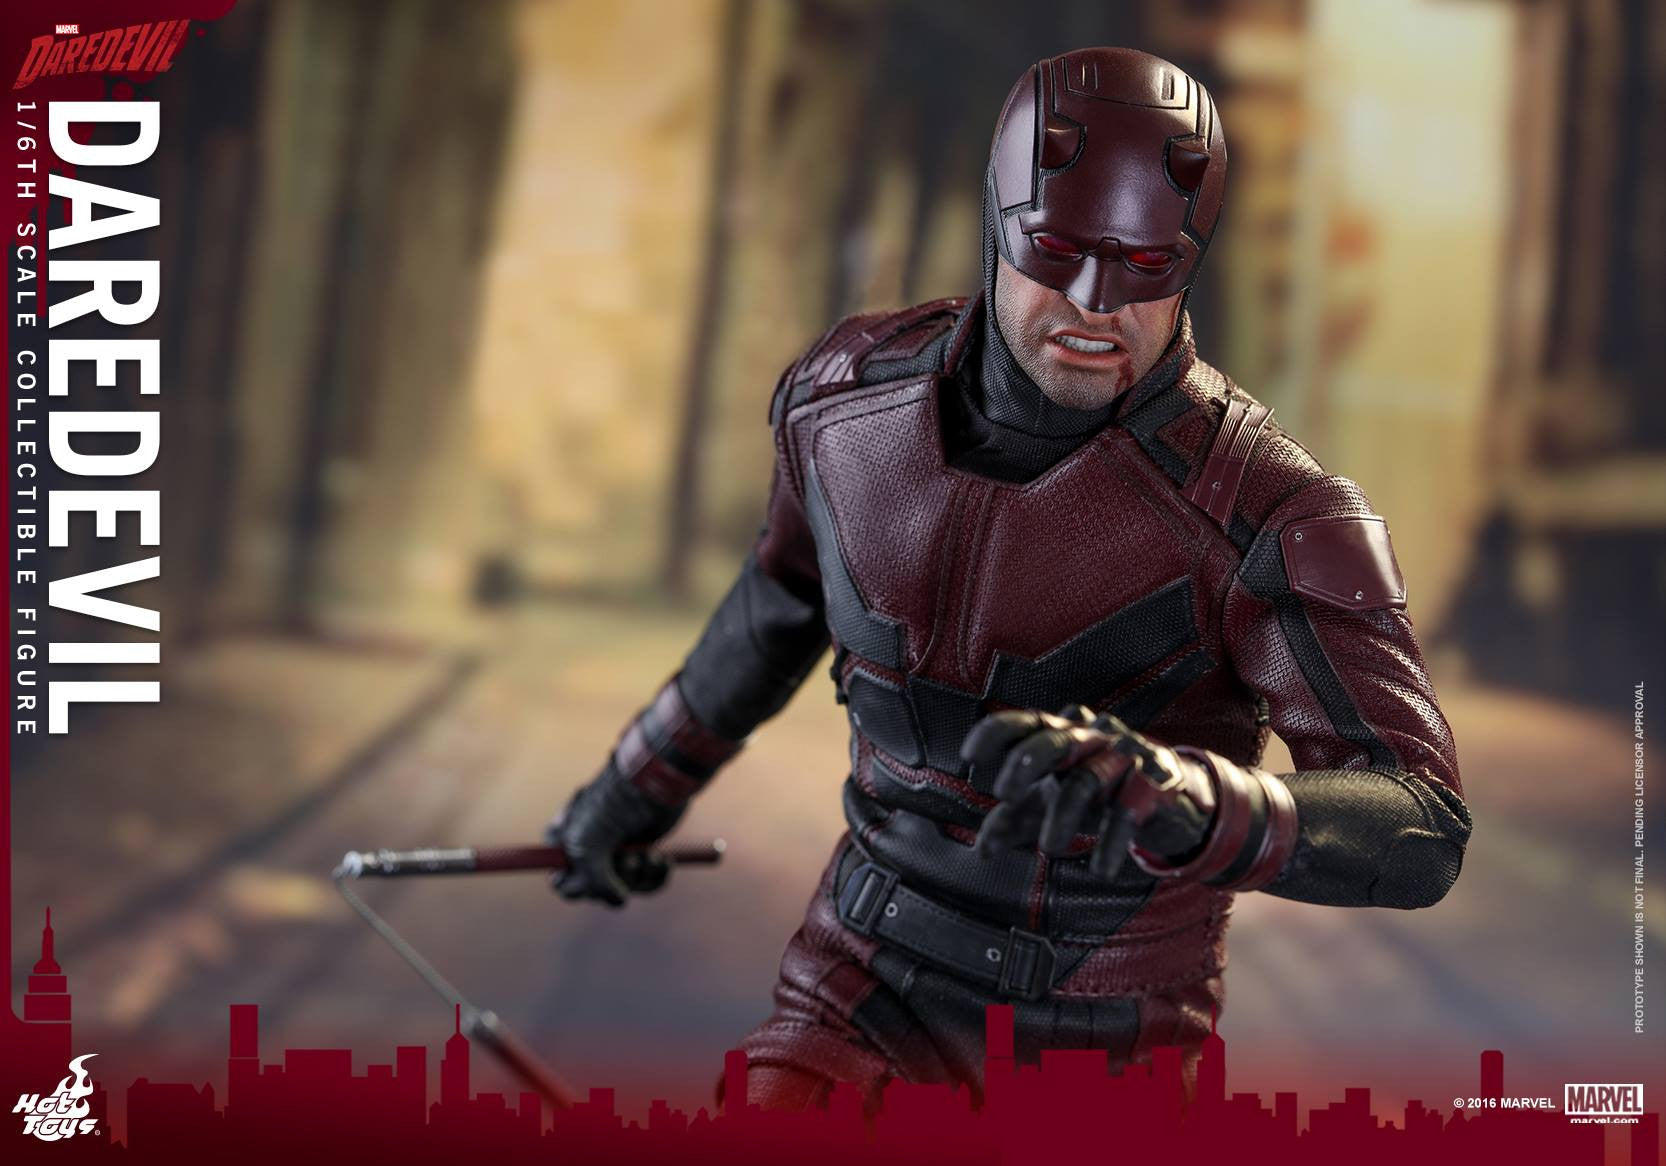 Hot Toys - TMS003 - Marvel's Daredevil - Daredevil - Marvelous Toys - 18